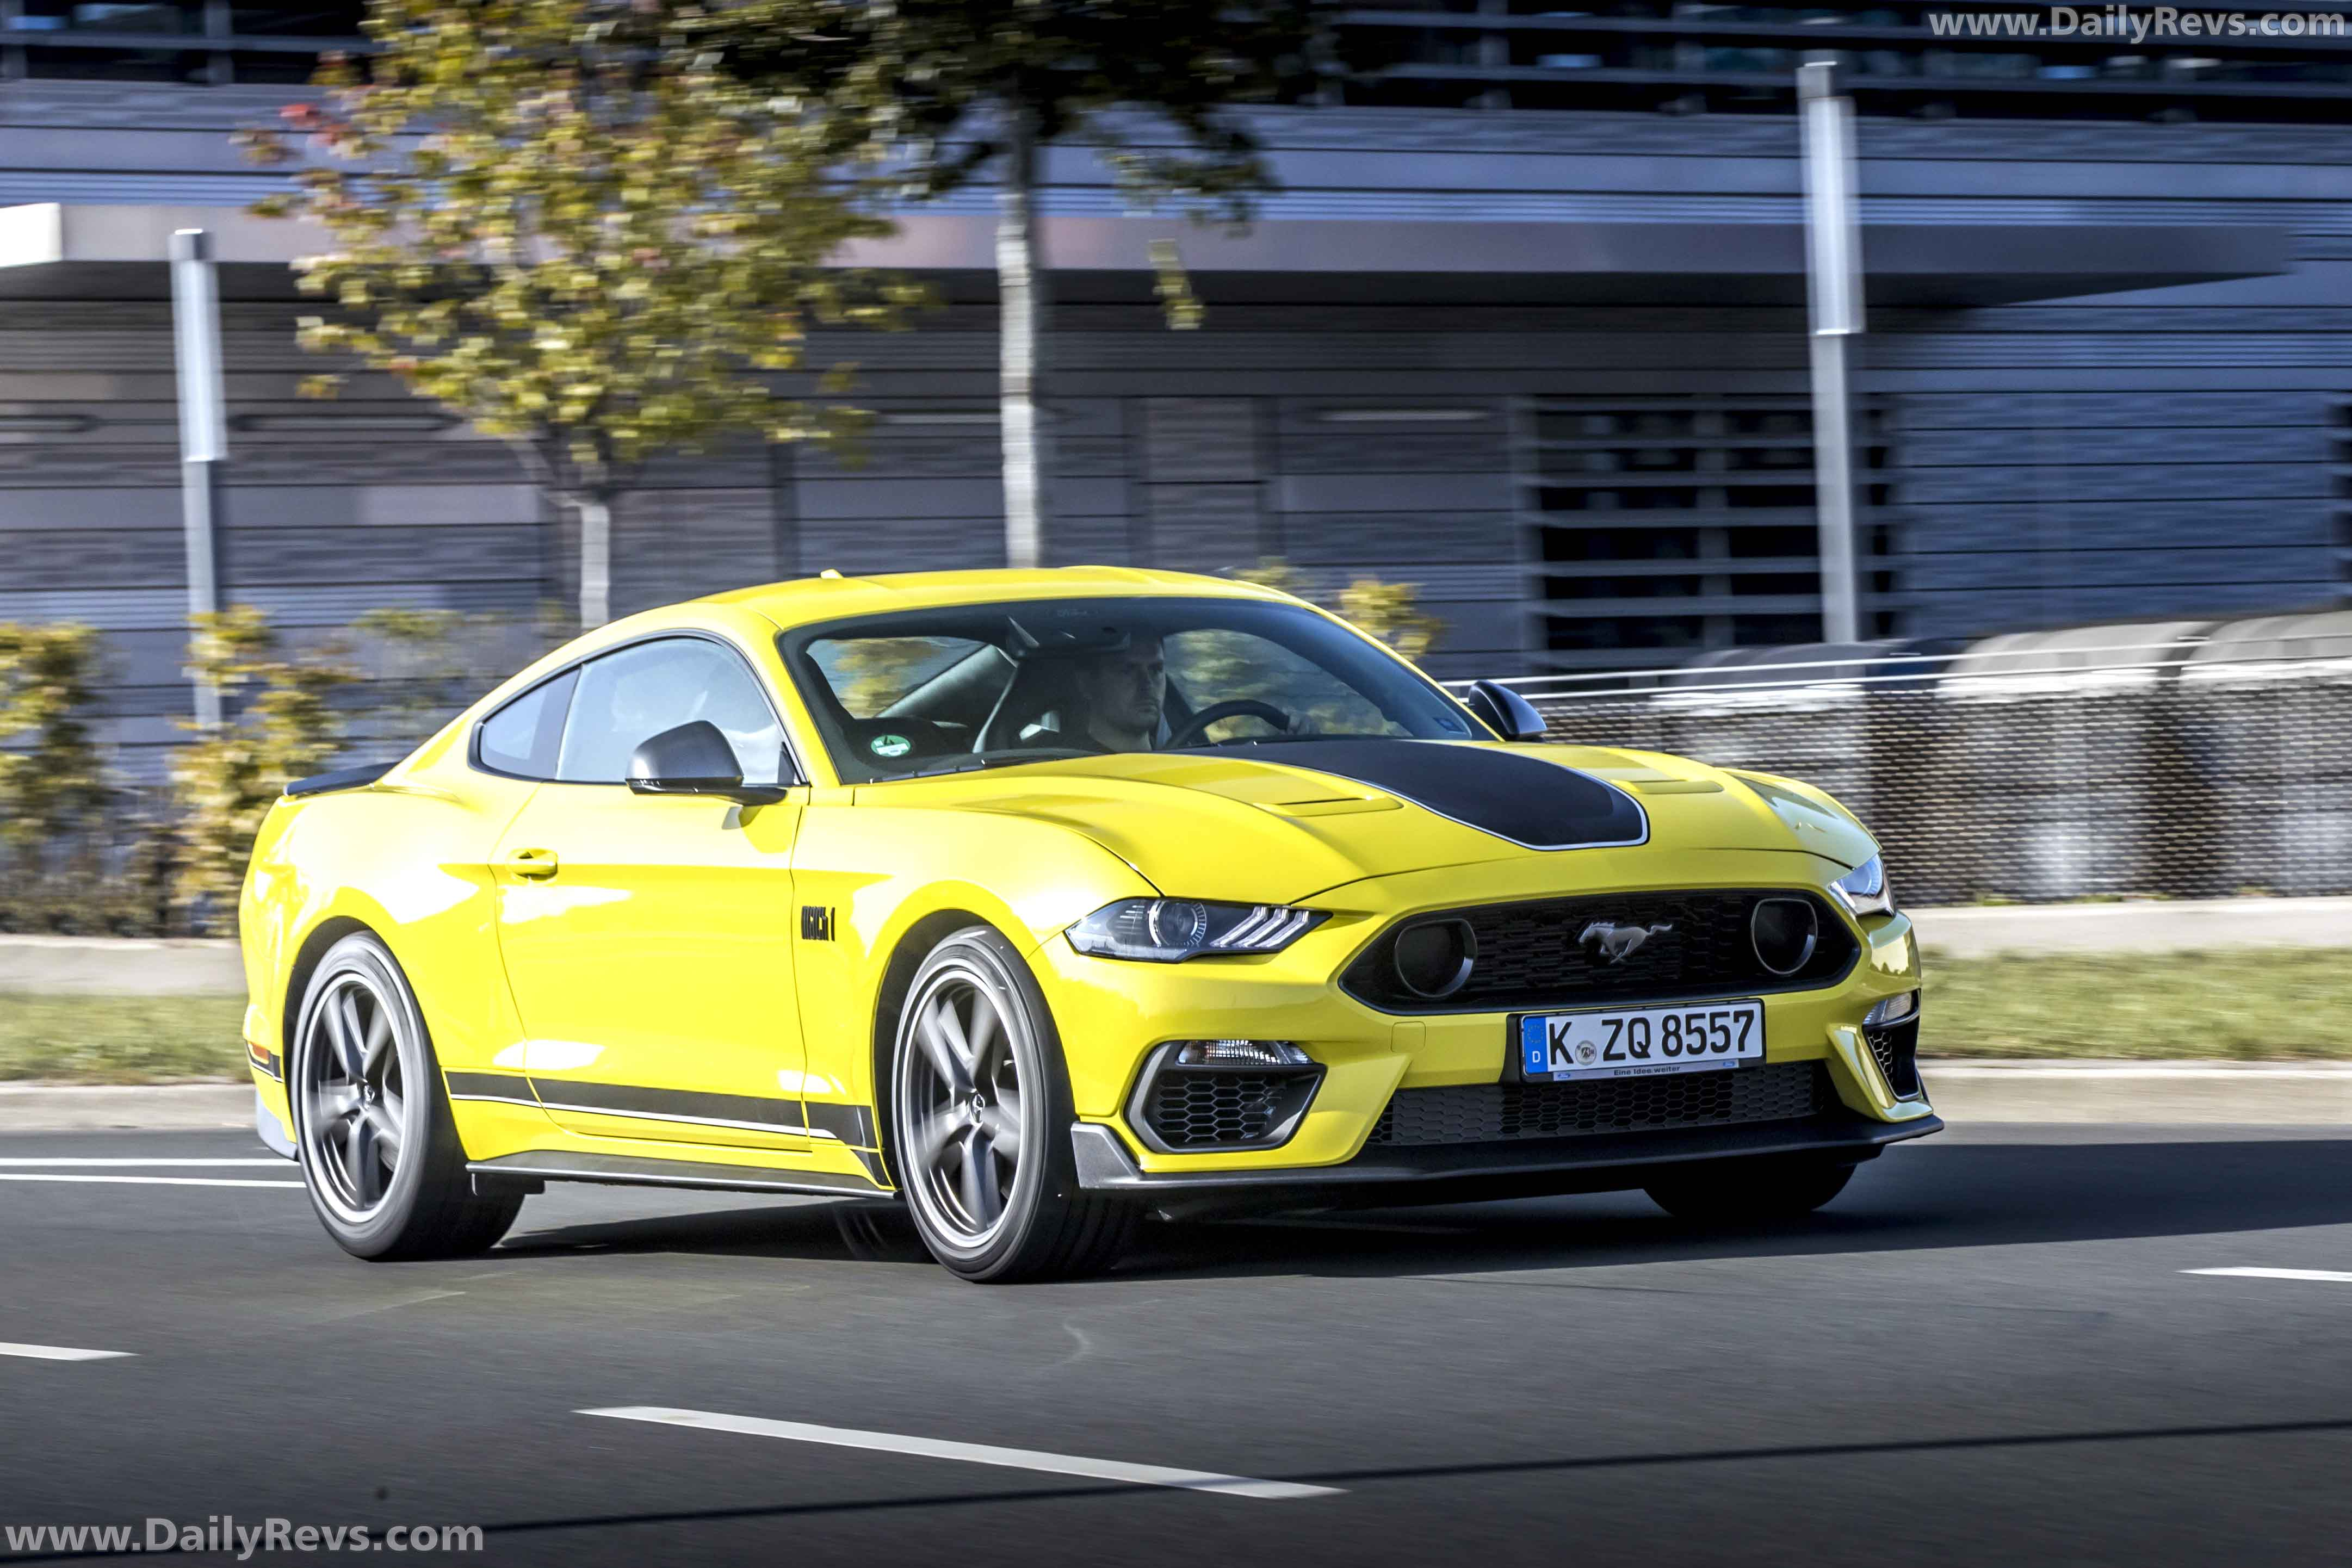 2021 ford mustang mach 1 - european version - dailyrevs